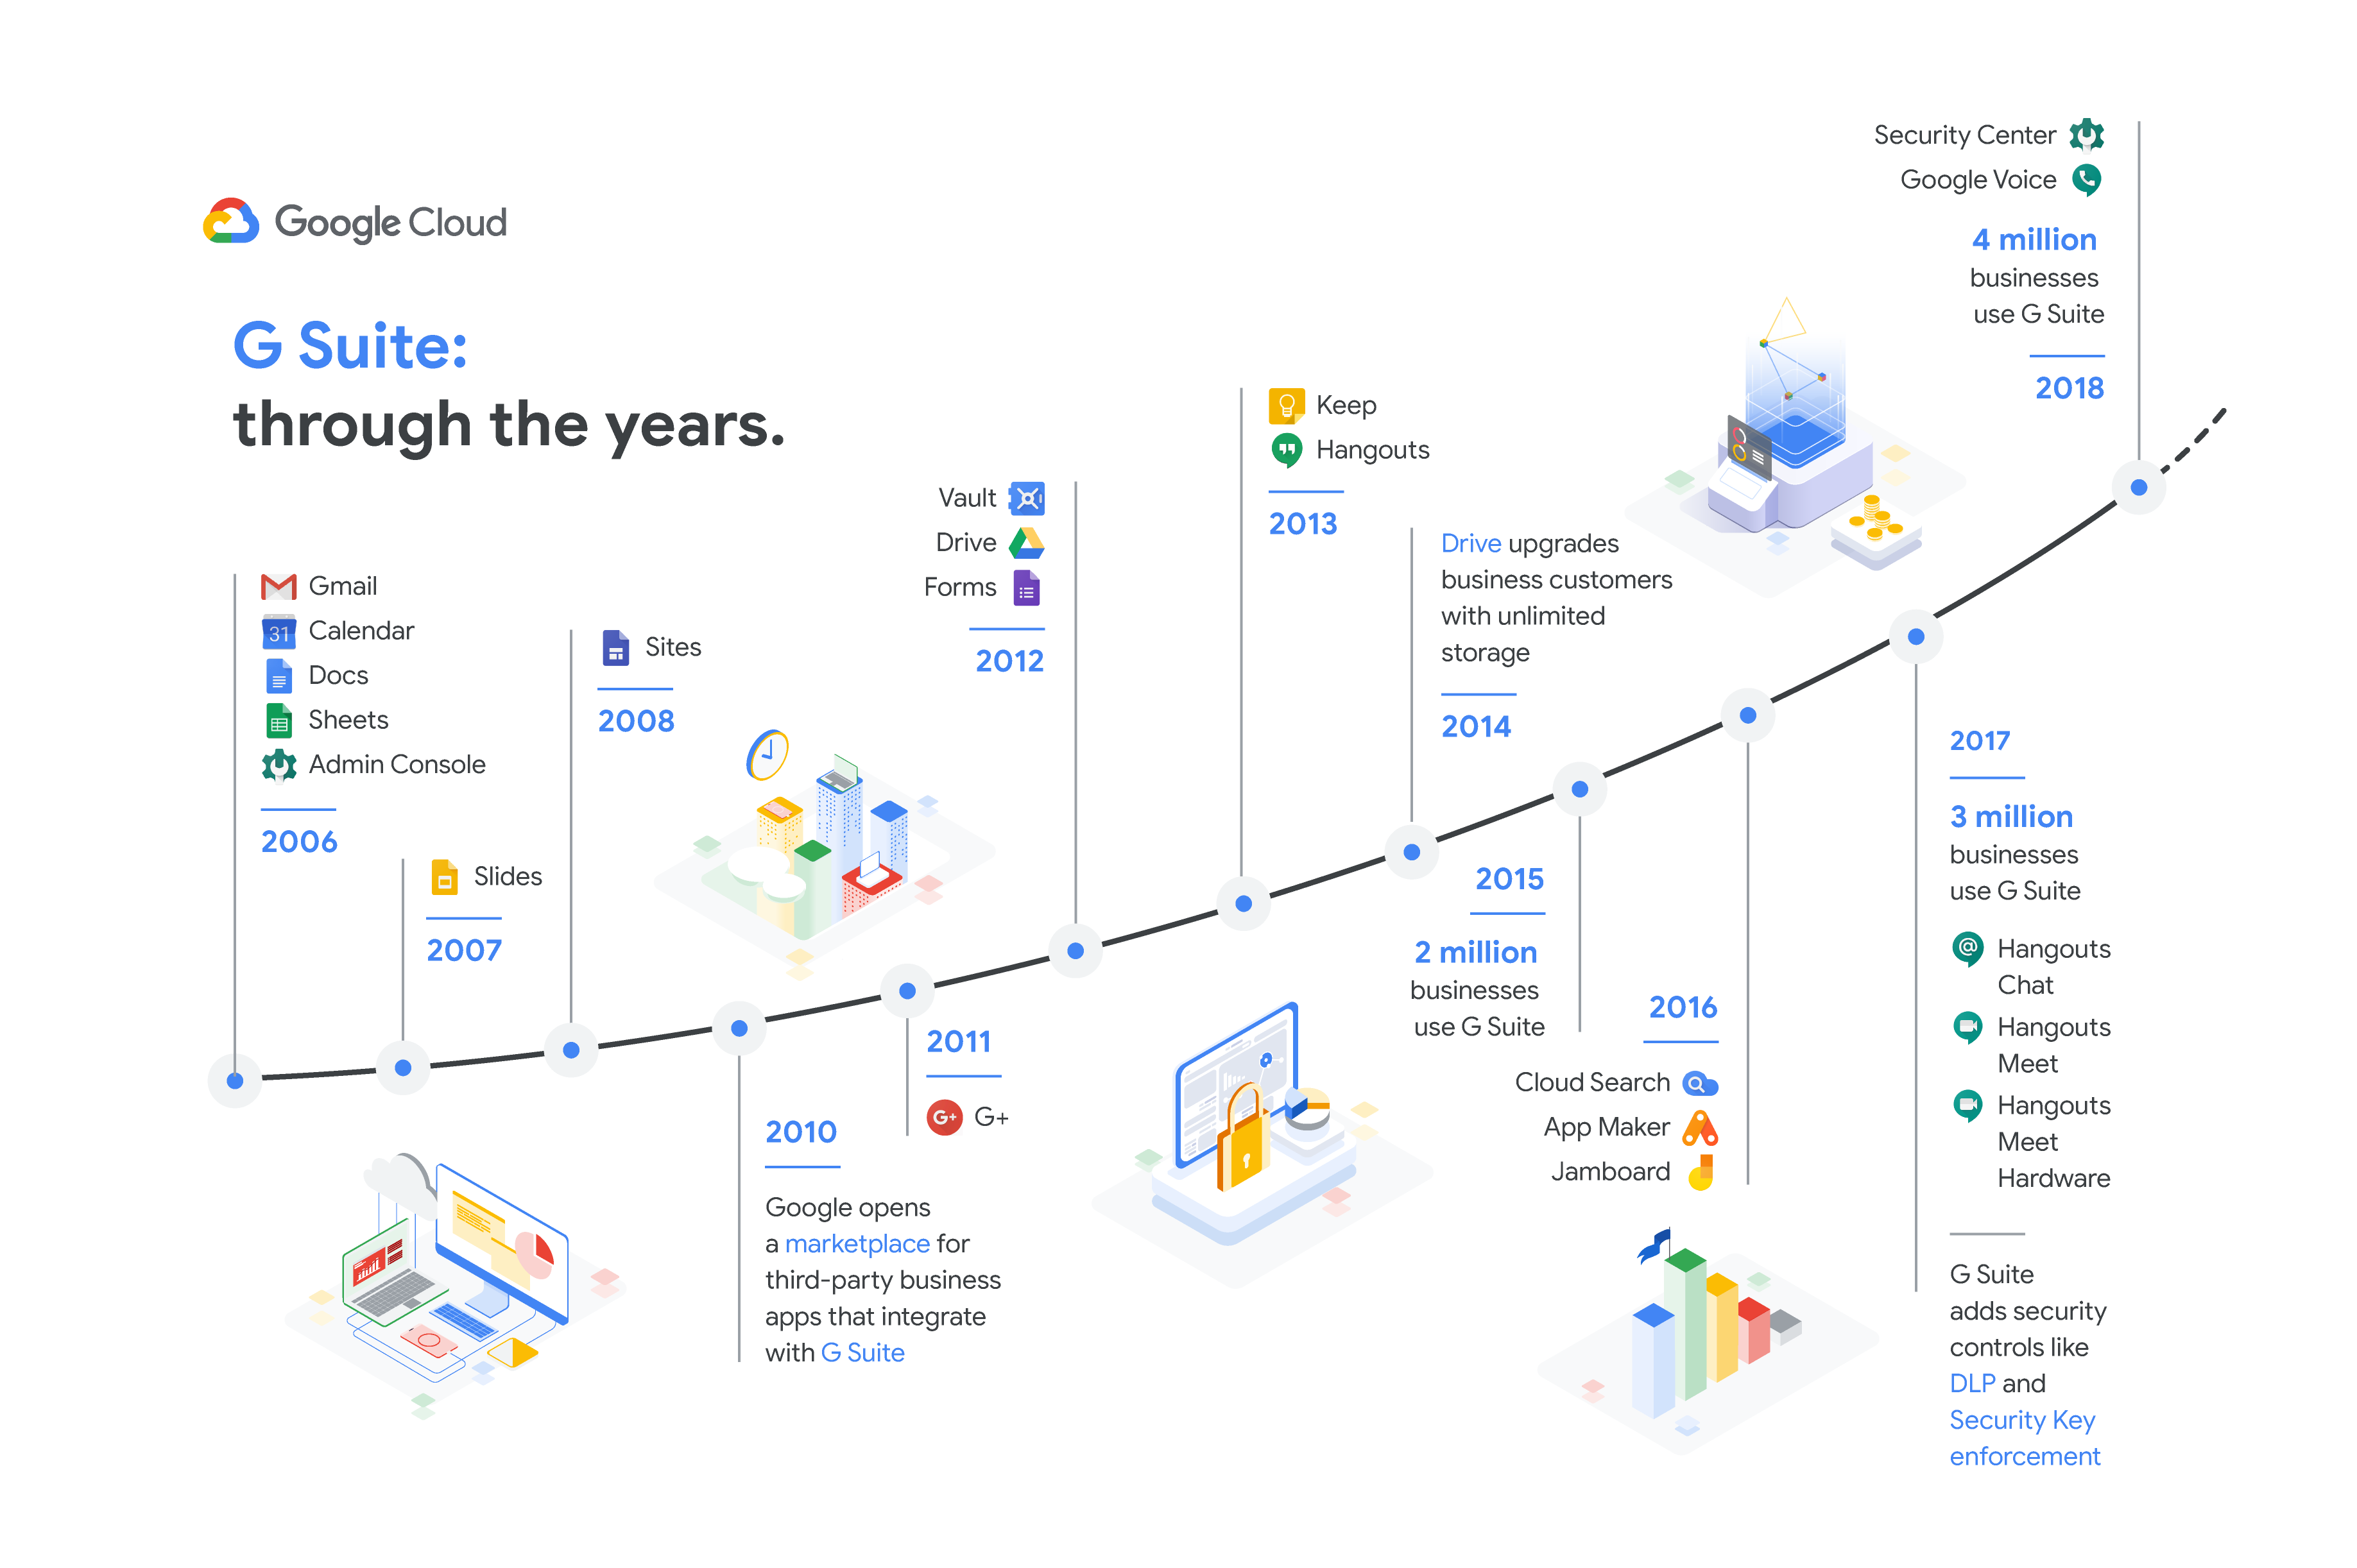 timeline of G Suite changes through the years